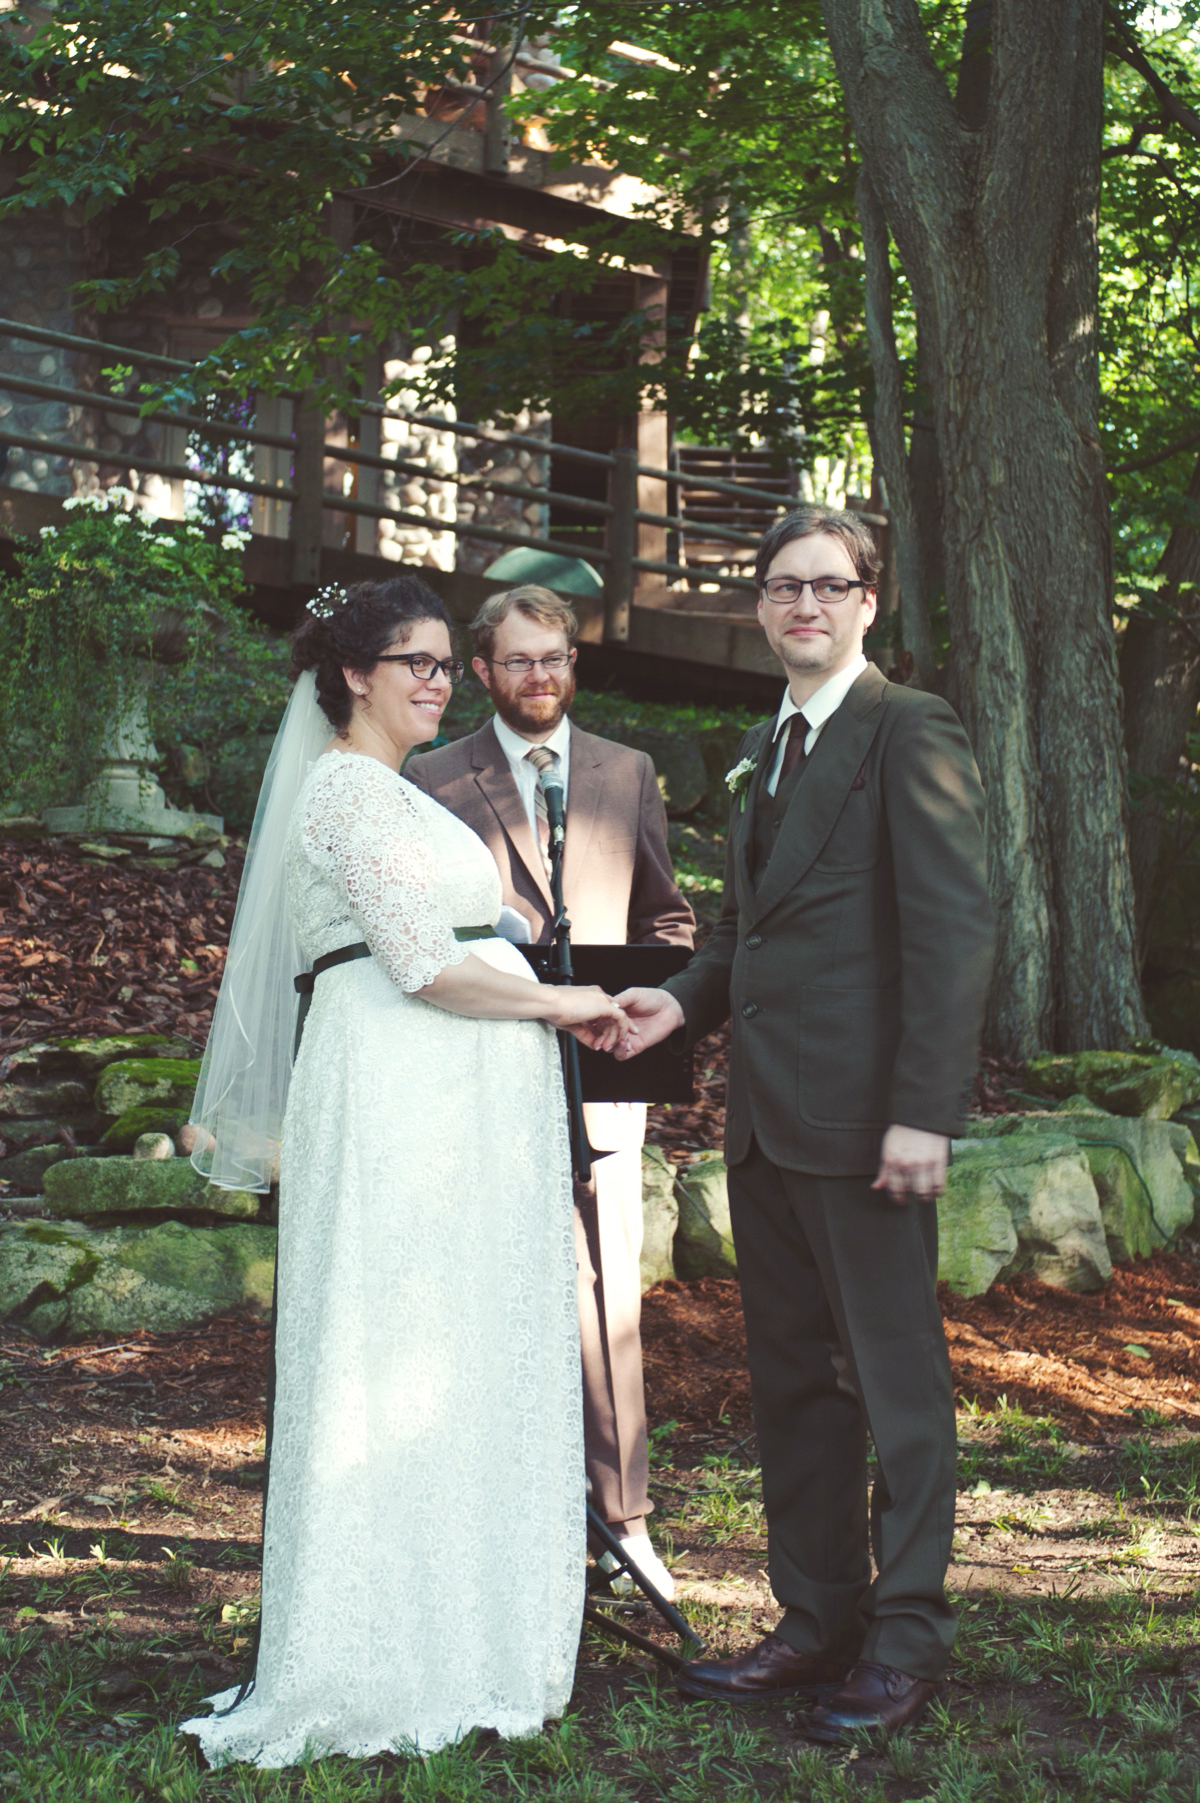 Kelleysislandwedding (16)